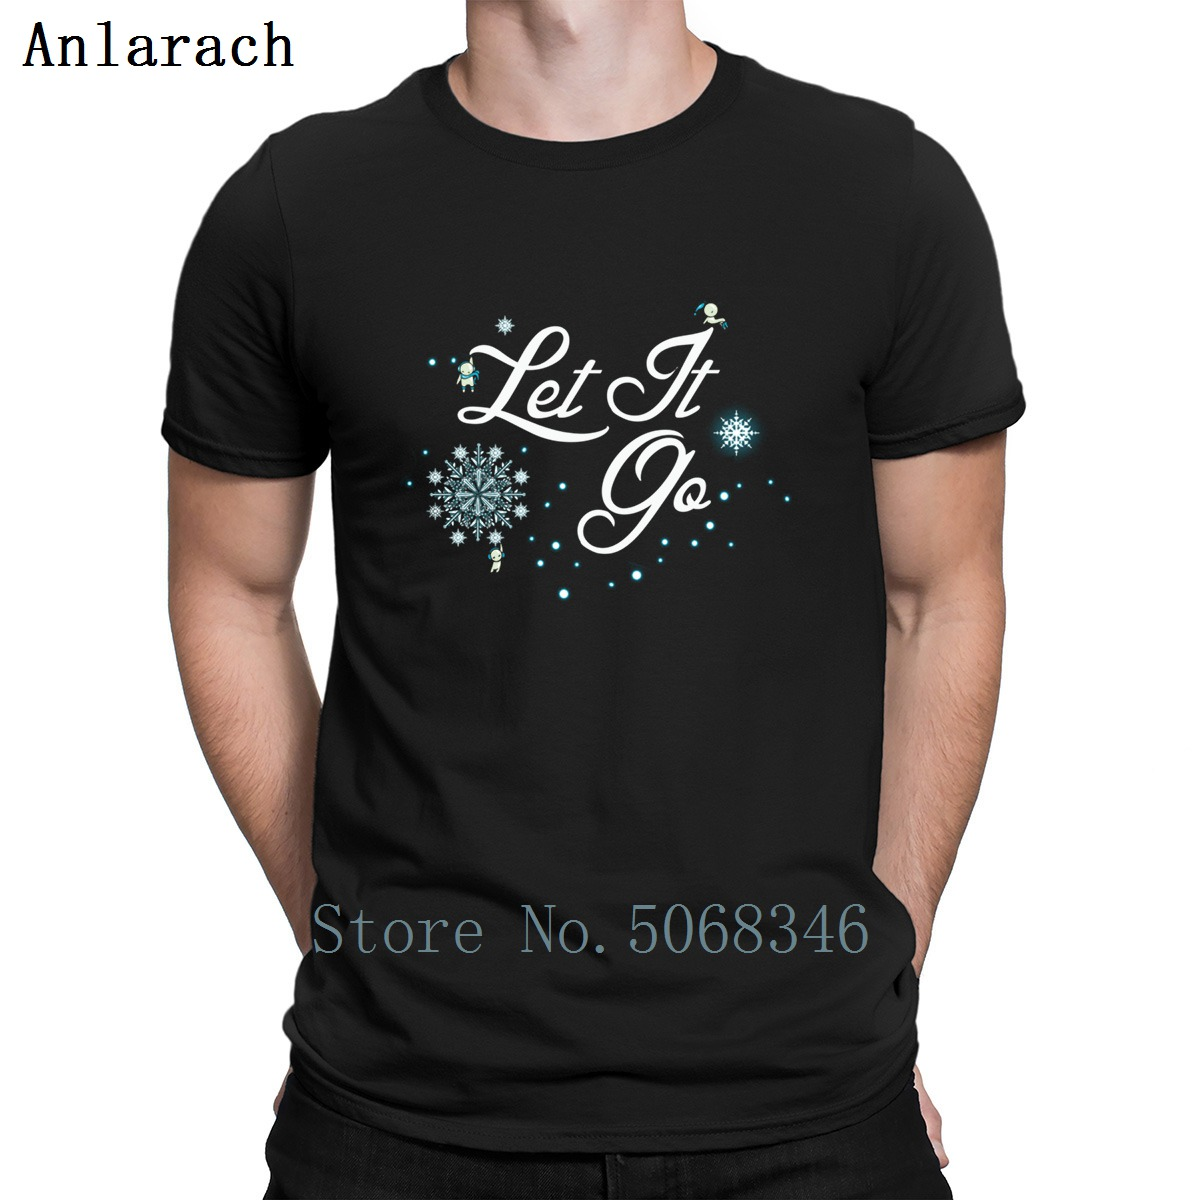 Let It Go Frozened T Shirt Personalized S-XXXL Anti-Wrinkle Spring New Style Male Outfit Cotton Shirt